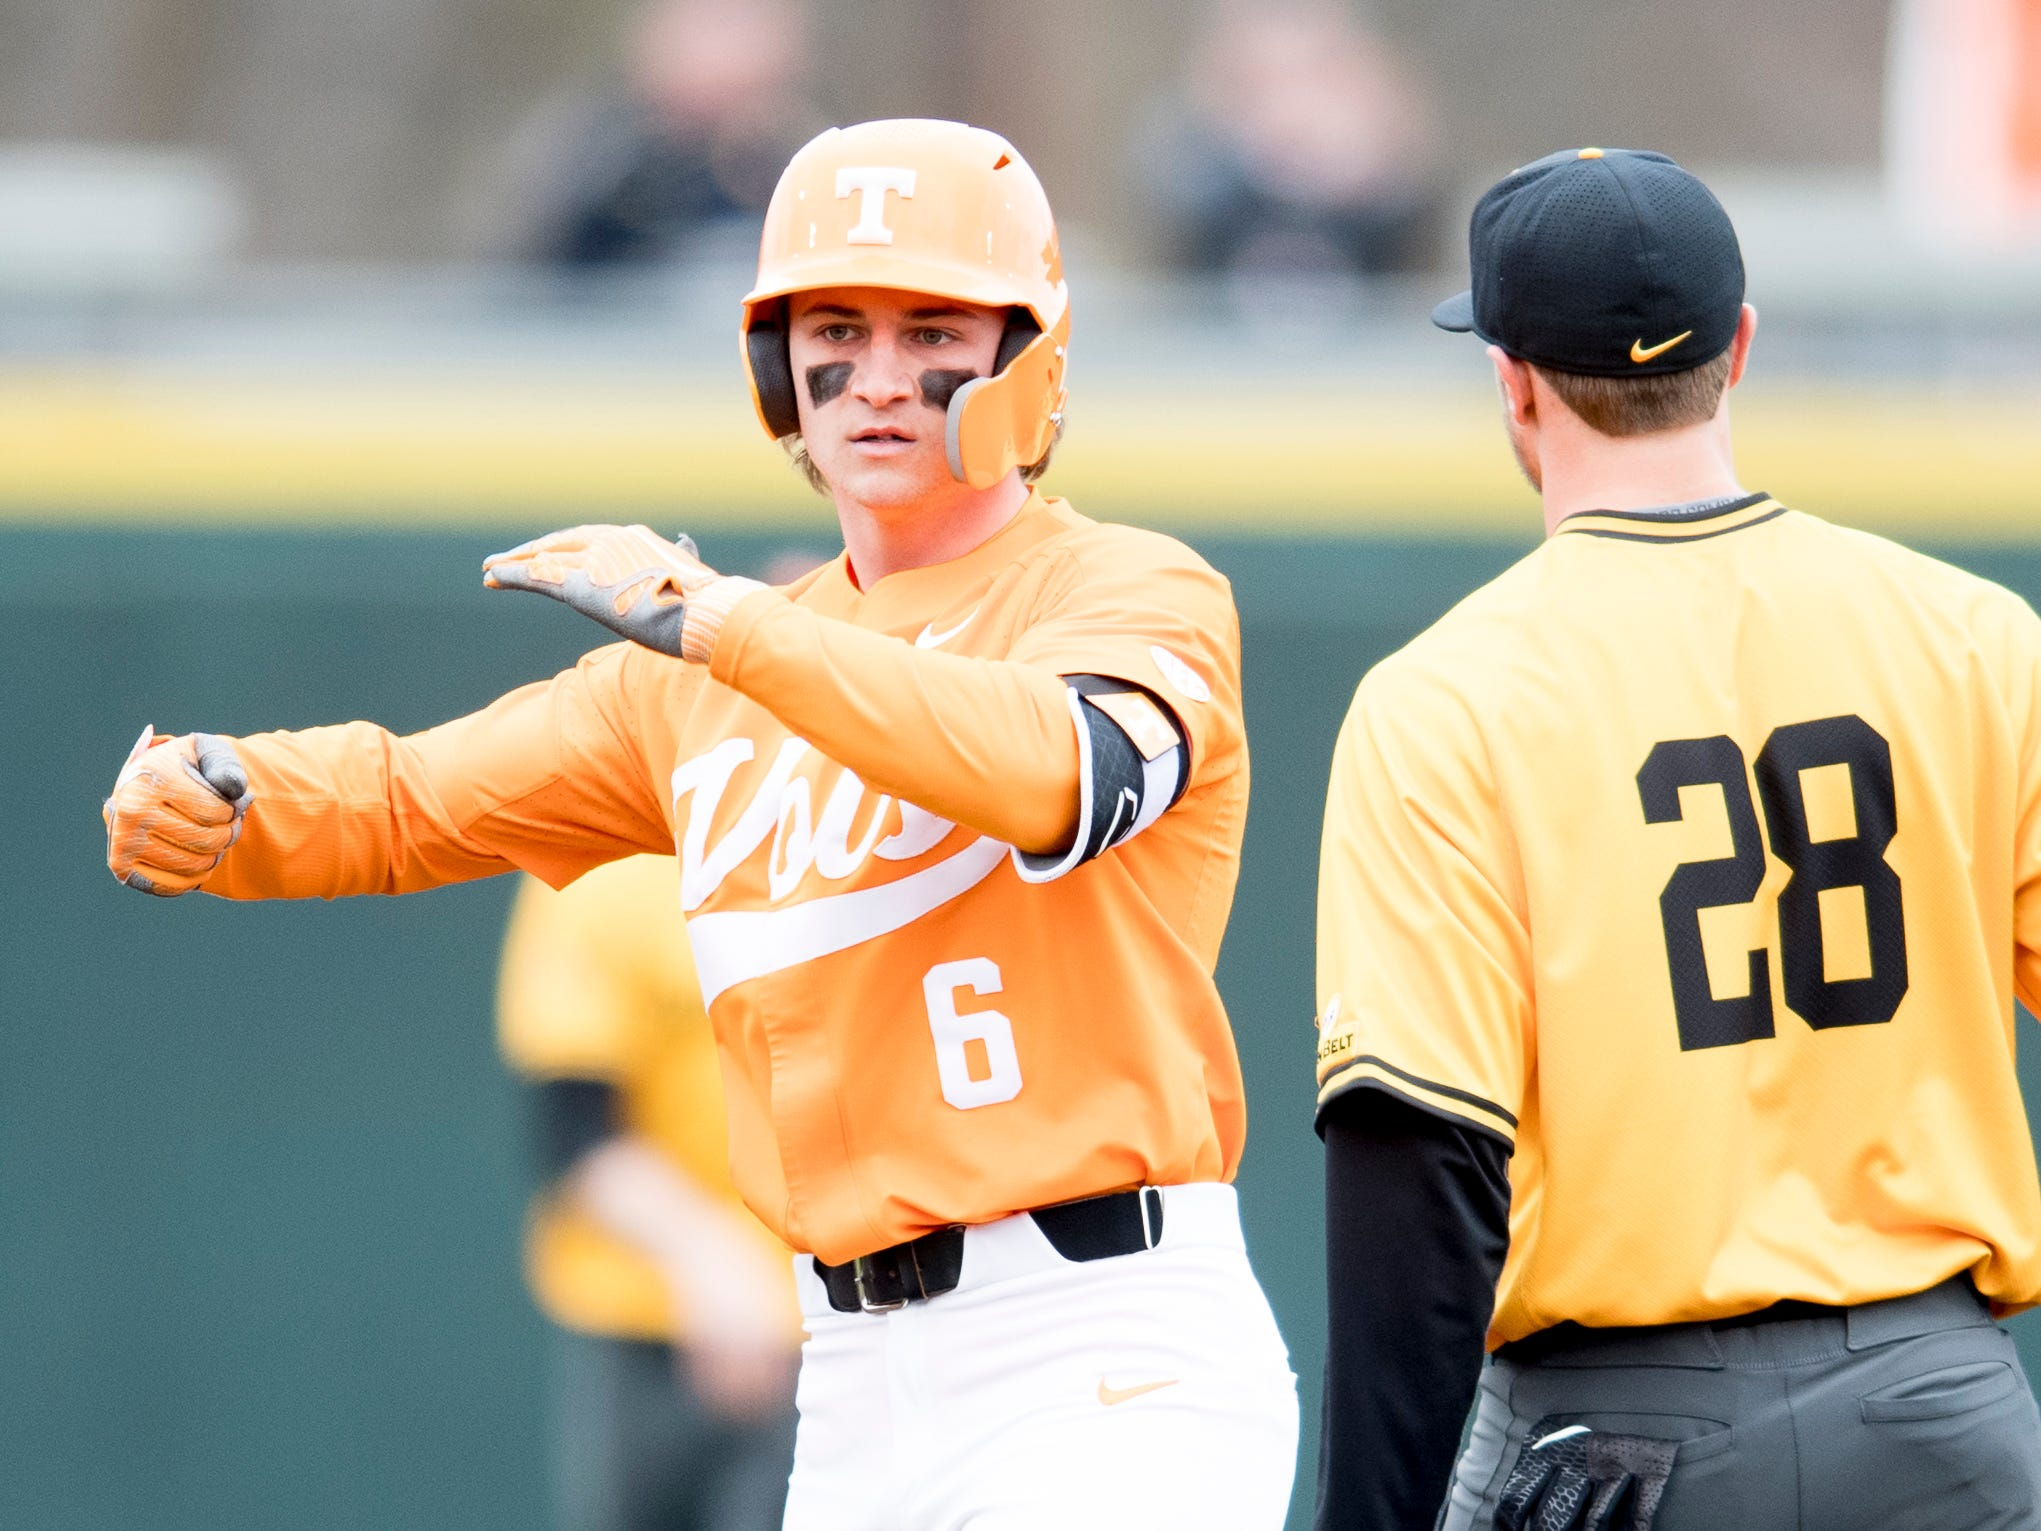 Tennessee outfielder Evan Russell (6) celebrates after a two base hit during a Tennessee baseball home opener game against Appalachian State at Lindsey Nelson Stadium in Knoxville, Tennessee on Saturday, February 16, 2019.